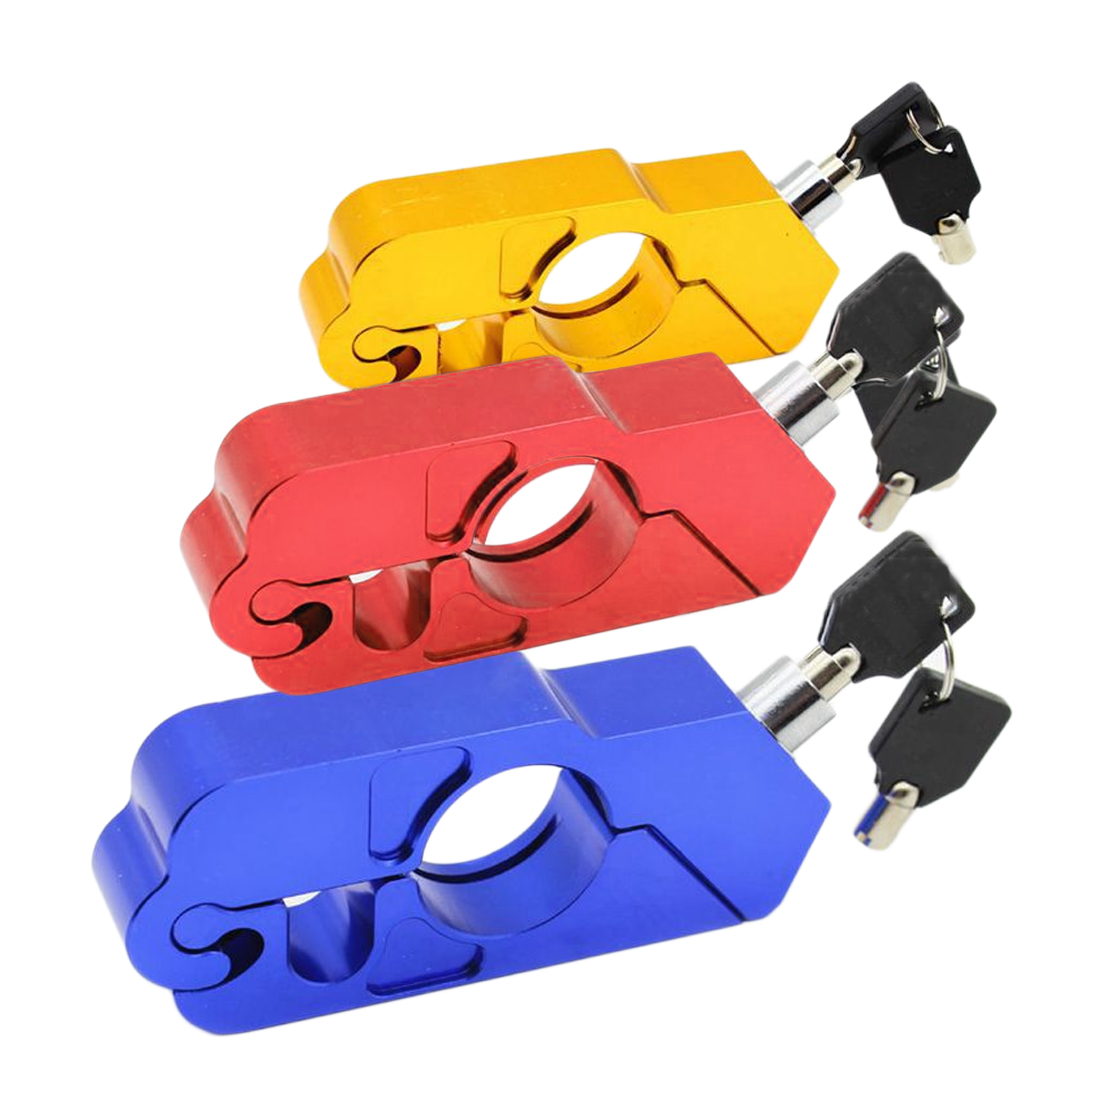 High Motorcycle Handlebar Lock Scooter ATV Brake Clutch Security Safety Theft Protection Locks For Honda Kawasaki Yamaha Piaggio high motorcycle handlebar lock scooter atv brake clutch security safety theft protection locks for honda kawasaki yamaha piaggio